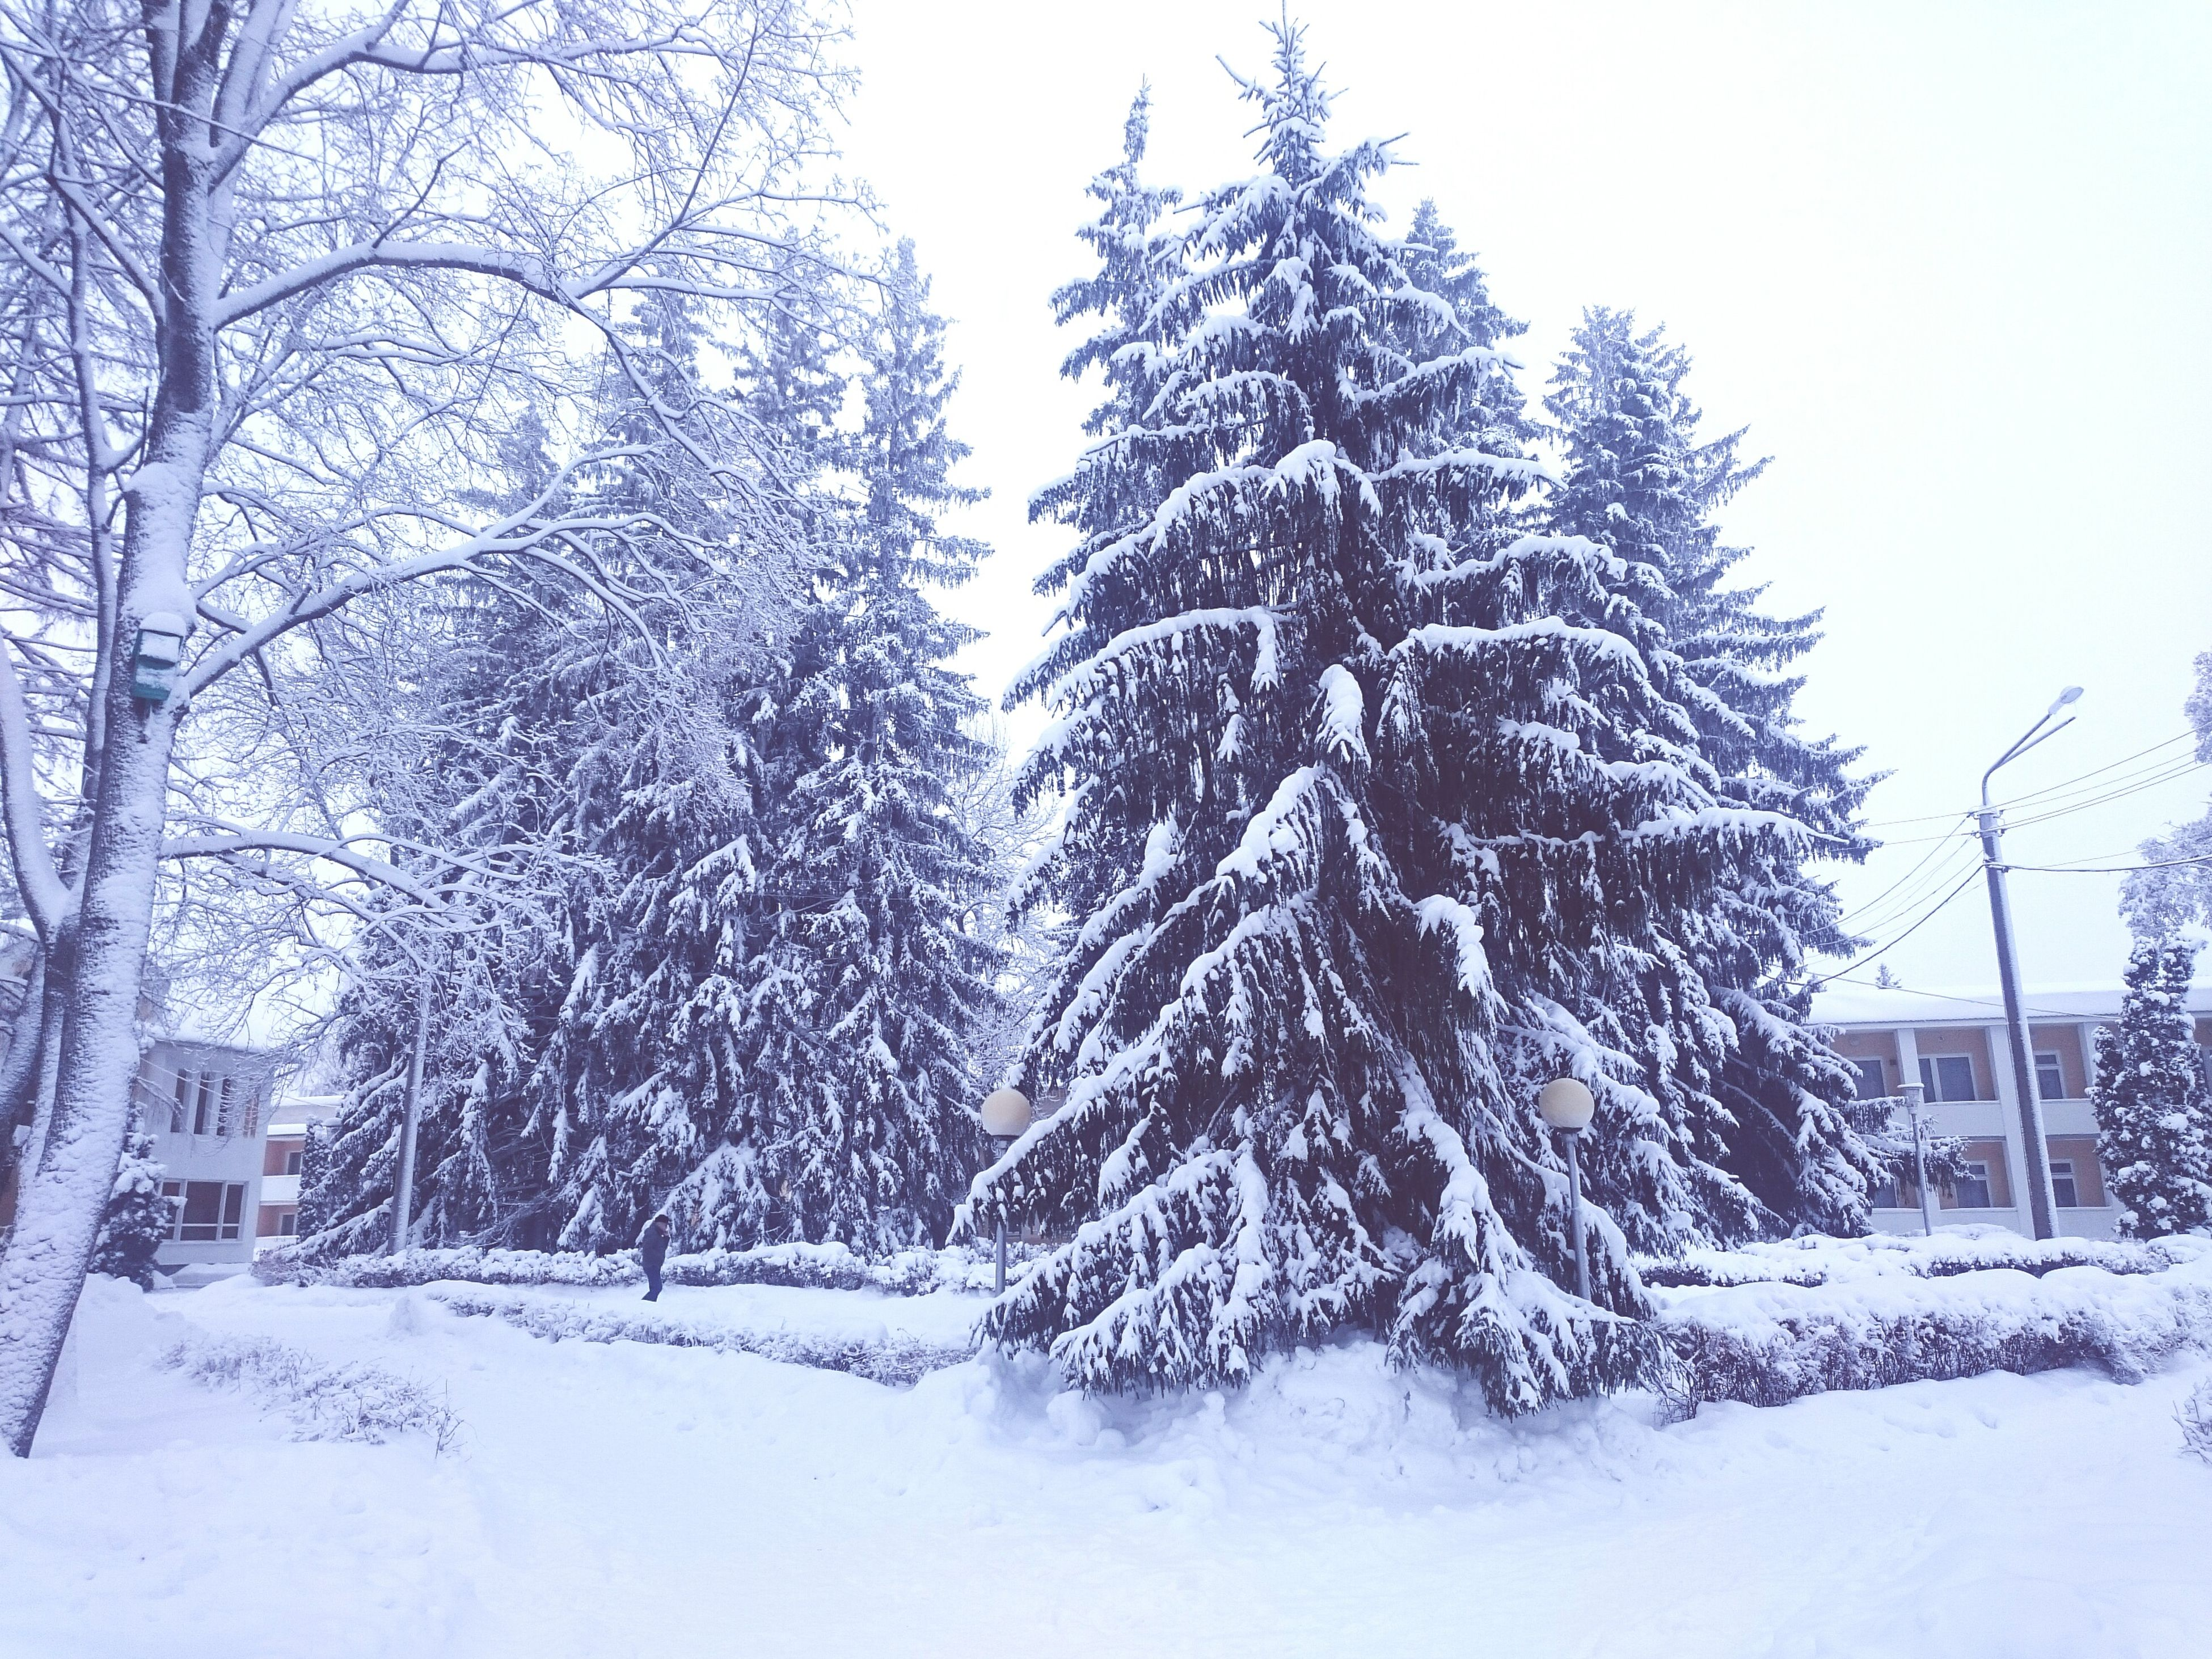 tree, winter, cold temperature, snow, no people, nature, day, outdoors, sky, beauty in nature, snowing